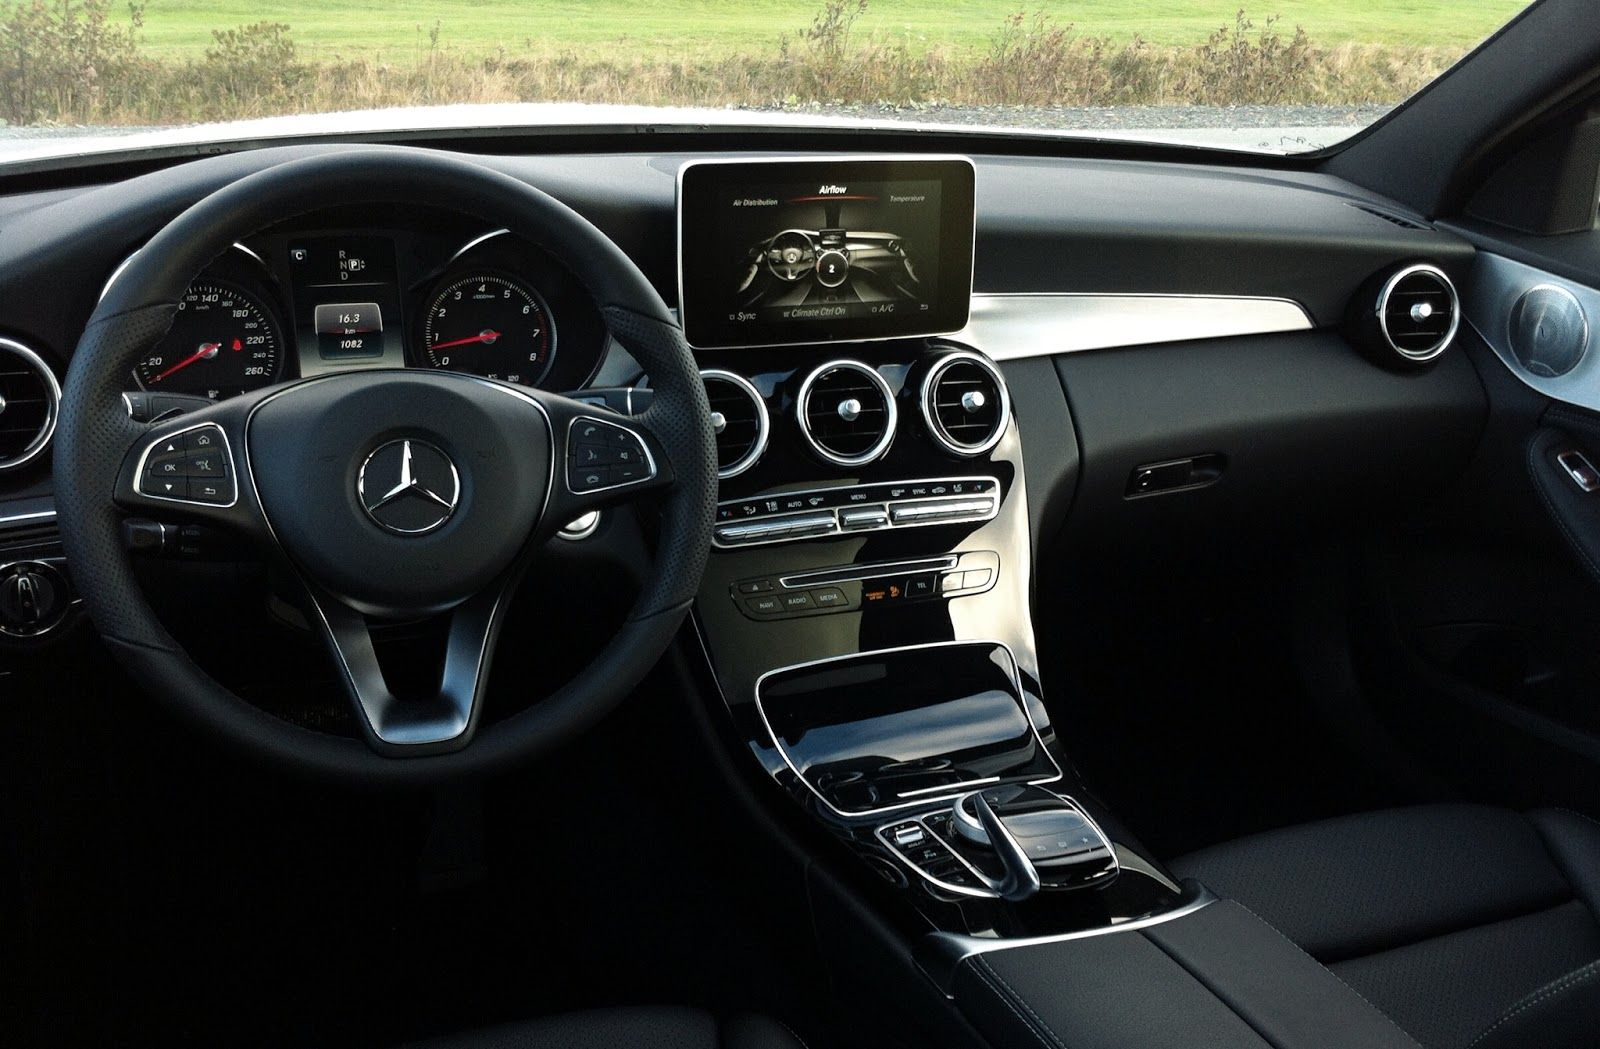 2015 Mercedes Benz C400 Interior Dashboard With Images